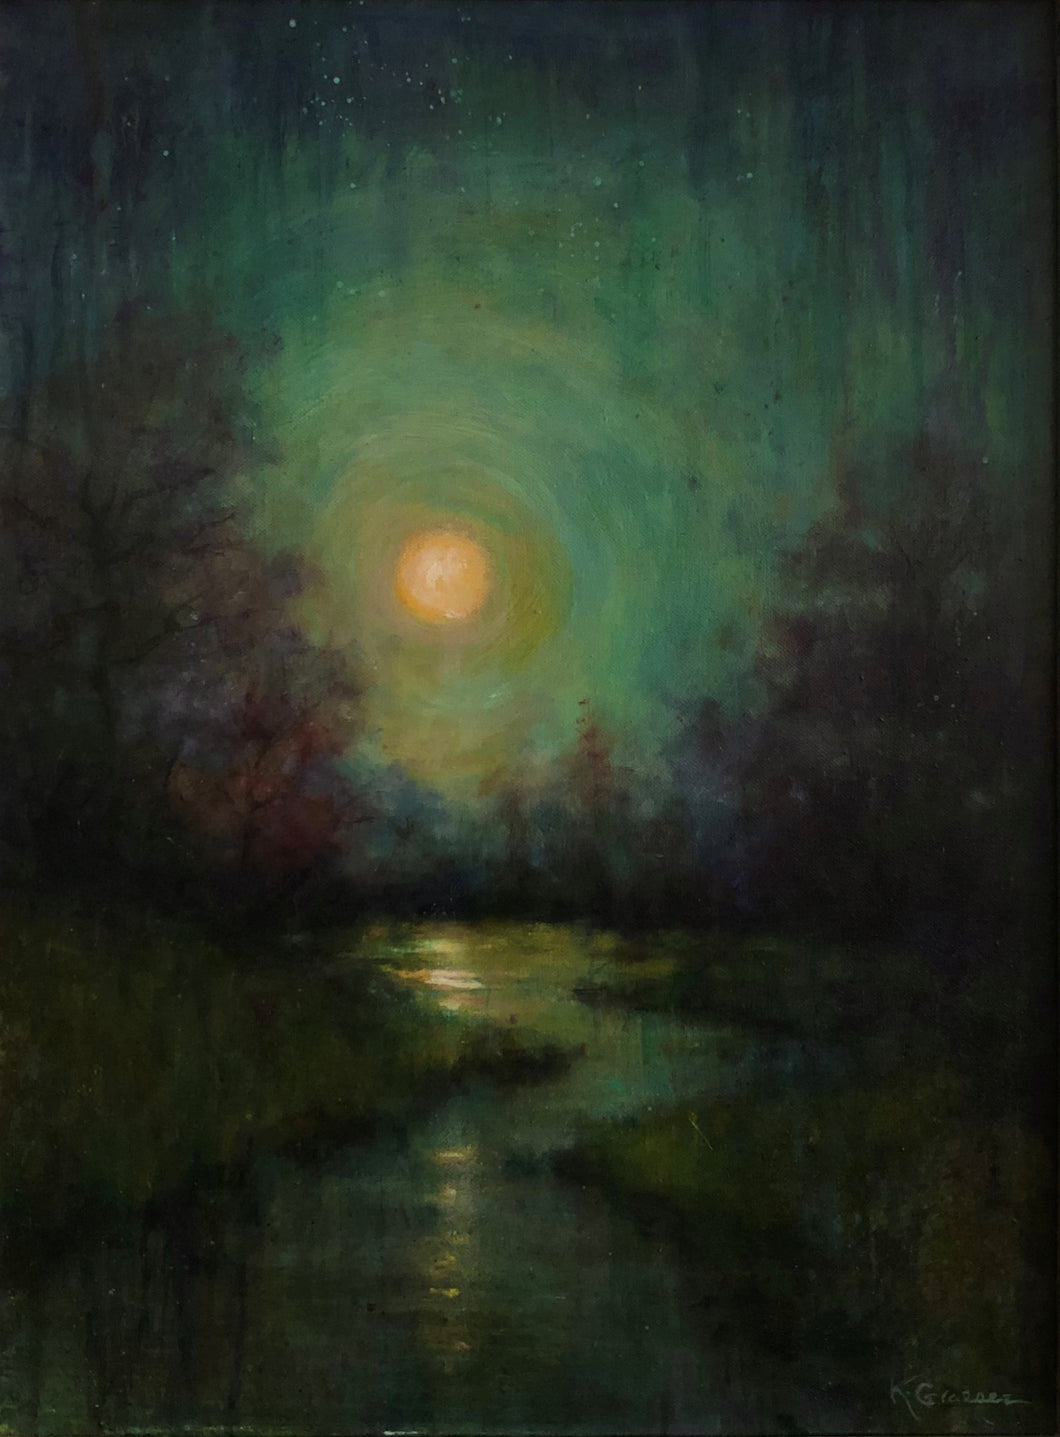 Title: Super Blue Blood Moon Artist: Karen Graeser Medium: Oil  Size: 24 x 18, framed